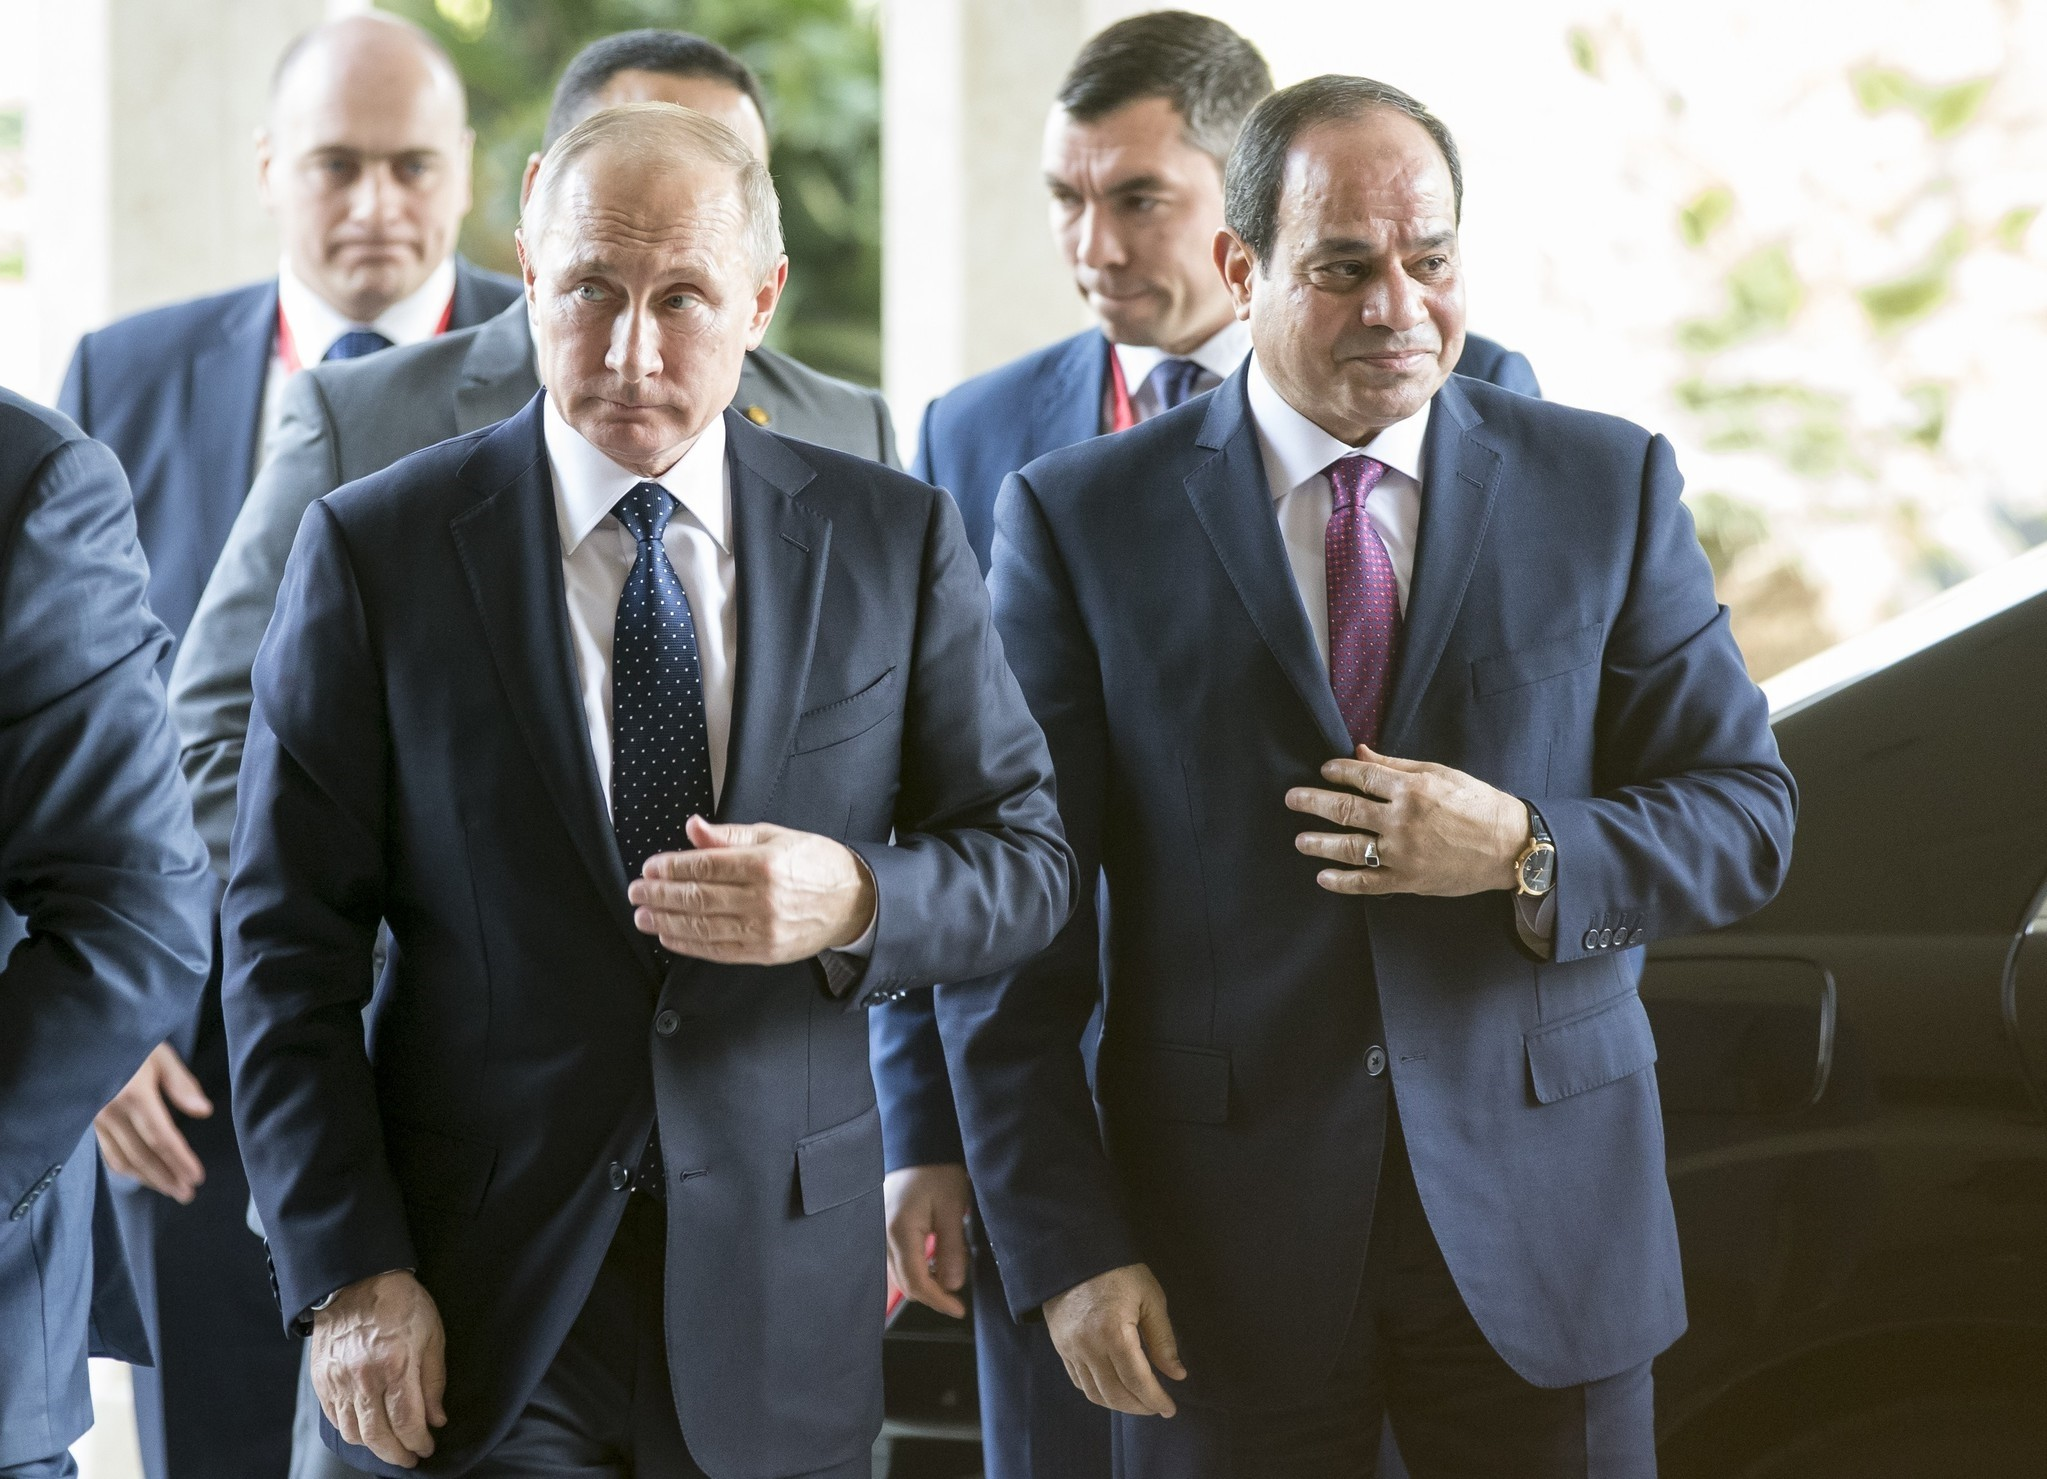 Egyptian president Abdel Fattah el-Sisi (R) welcomes his Russian counterpart  Vladimir Putin (L) prior to their meeting in Cairo on December 11, 2017. (AFP PHOTO)